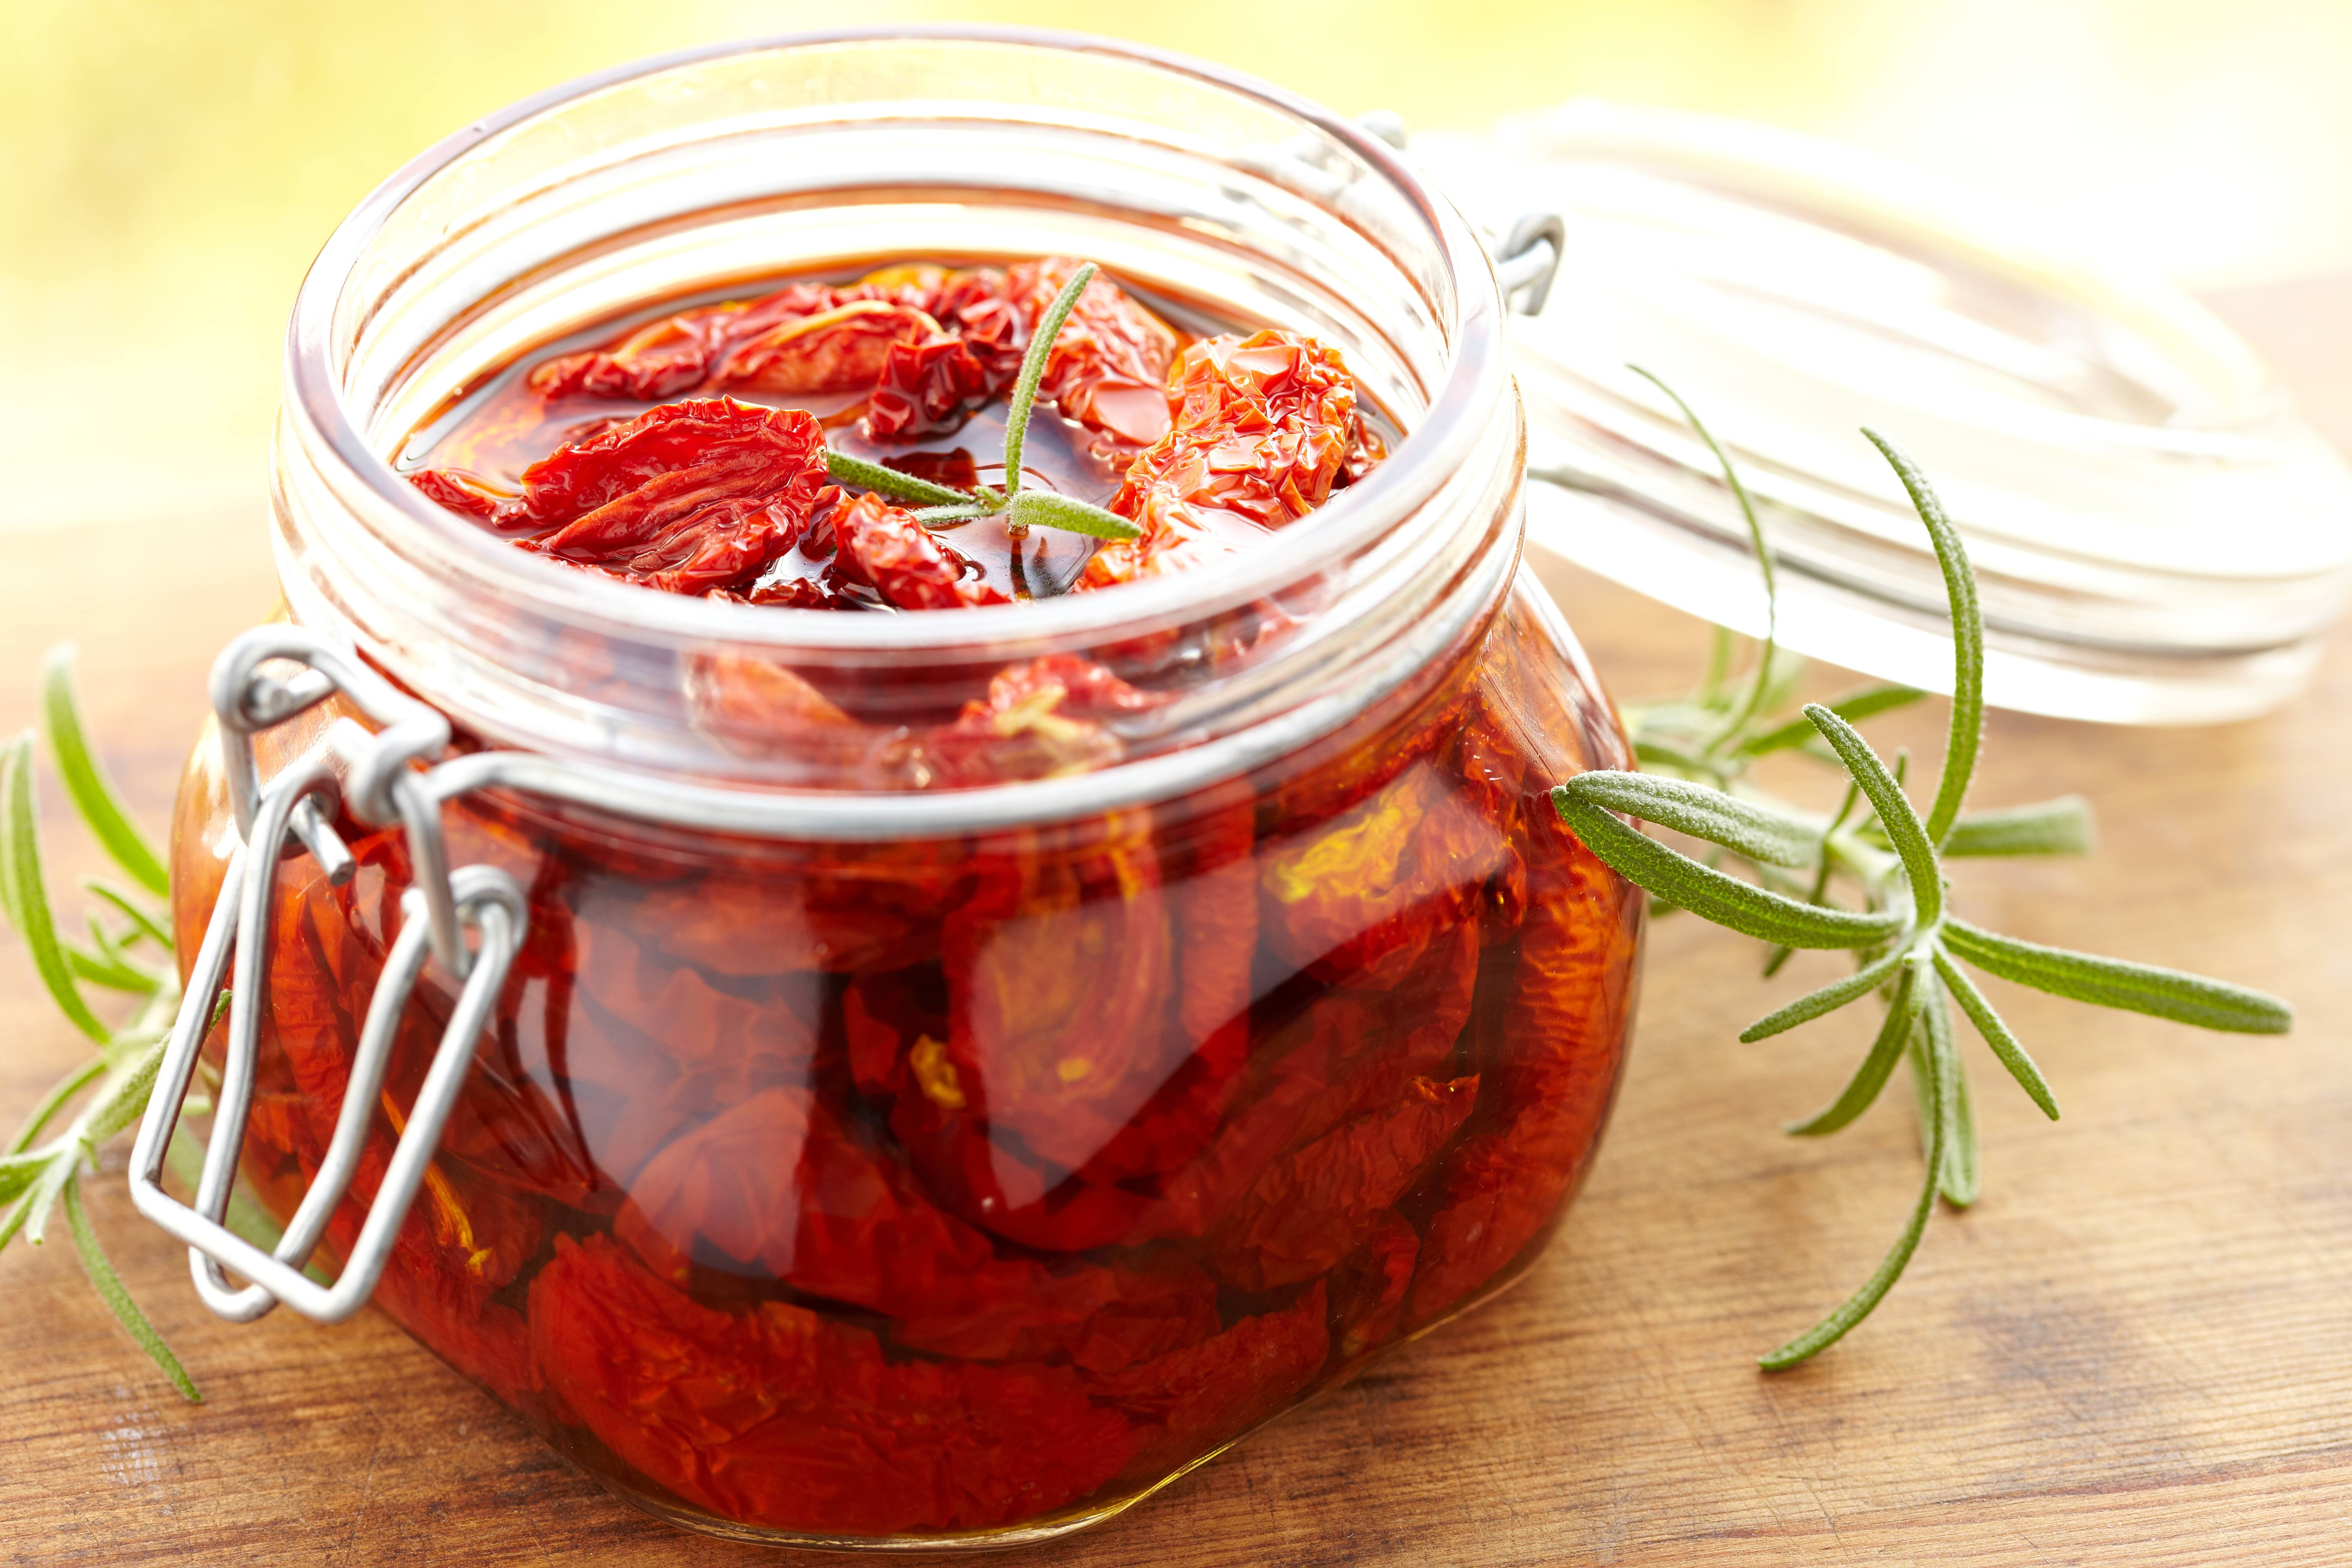 a jar of sundried tomatoes marinating for a vegetable pesto spread